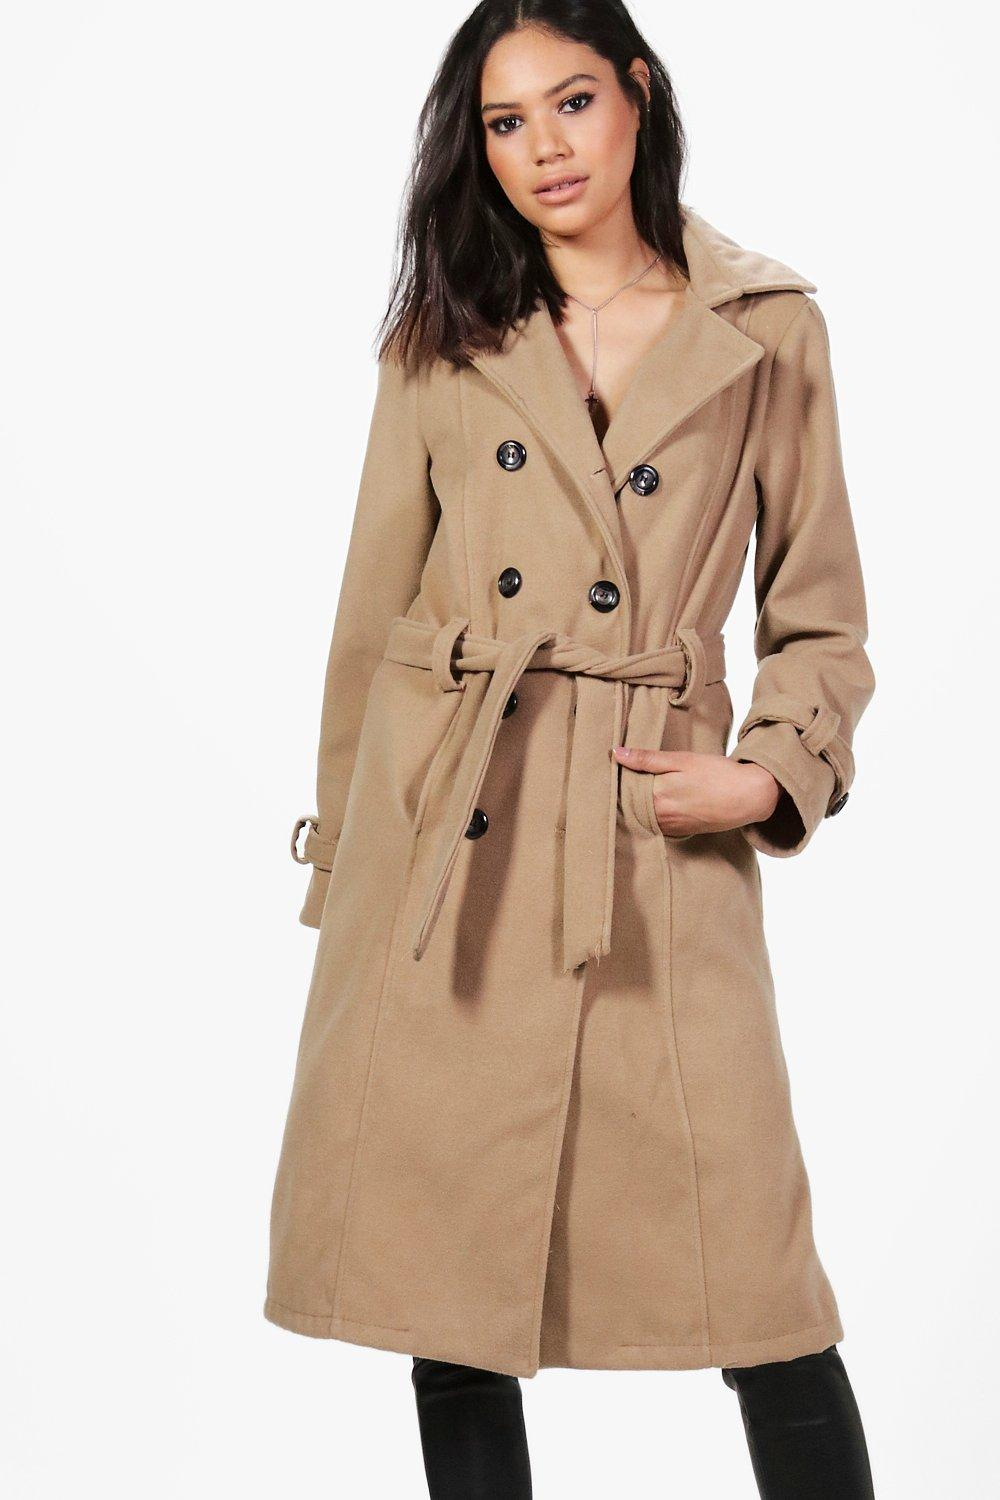 Looking for wholesale bulk discount camel trench coat cheap online drop shipping? tanahlot.tk offers a large selection of discount cheap camel trench coat at a fraction of the retail price.